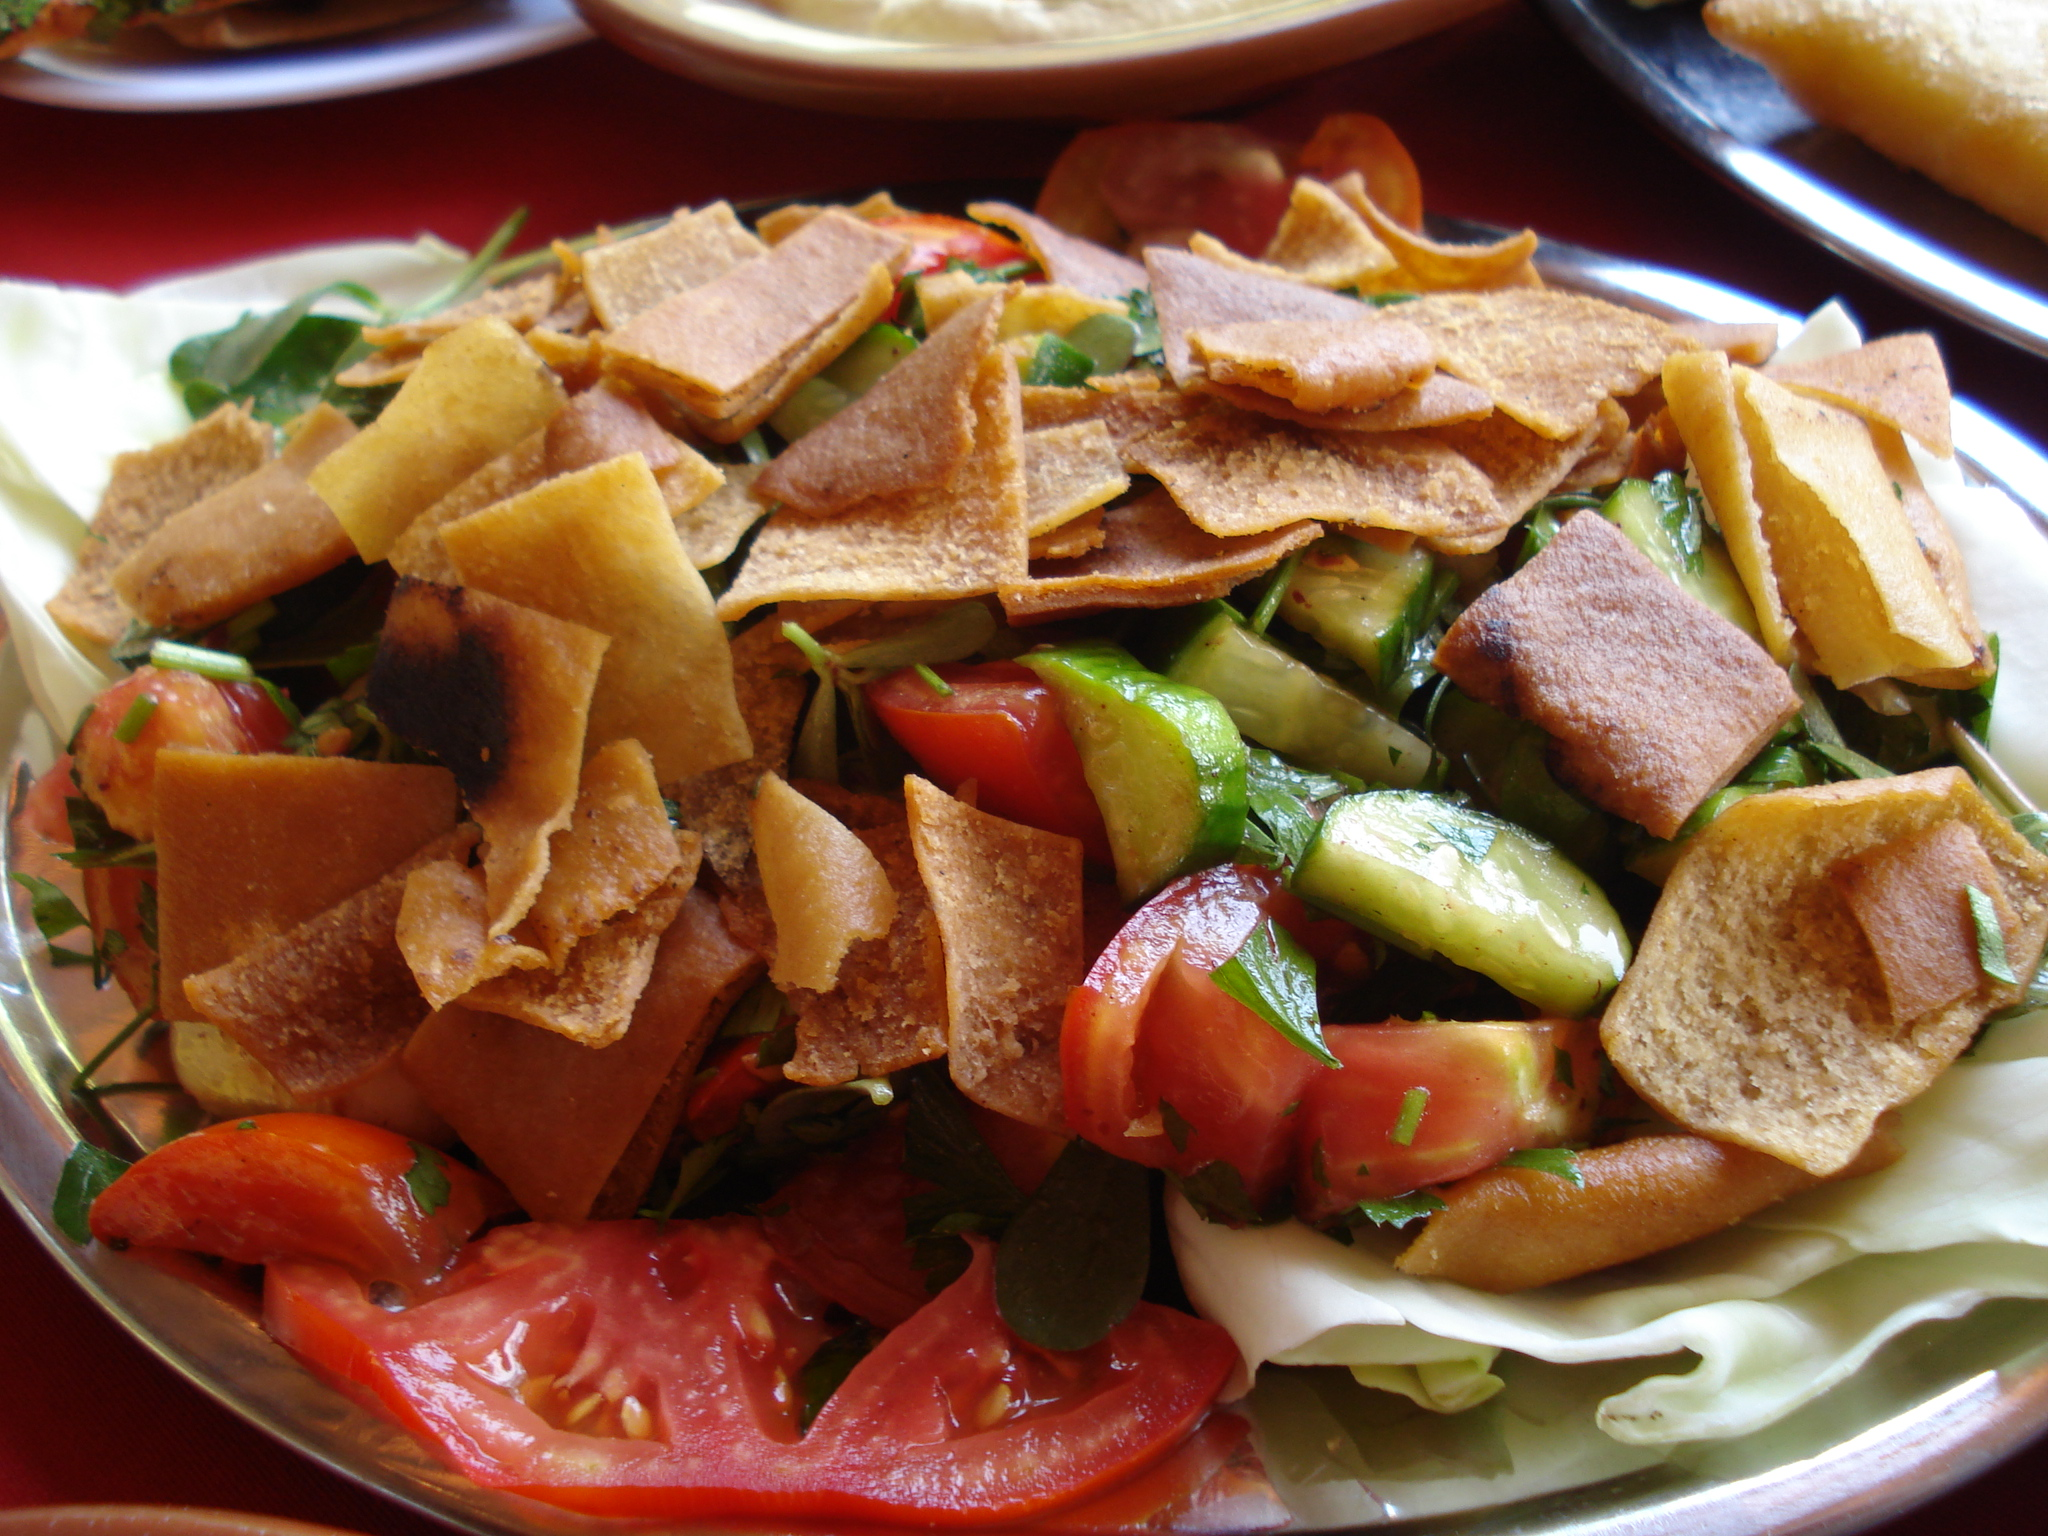 File:Fattoush.JPG - Wikimedia Commons